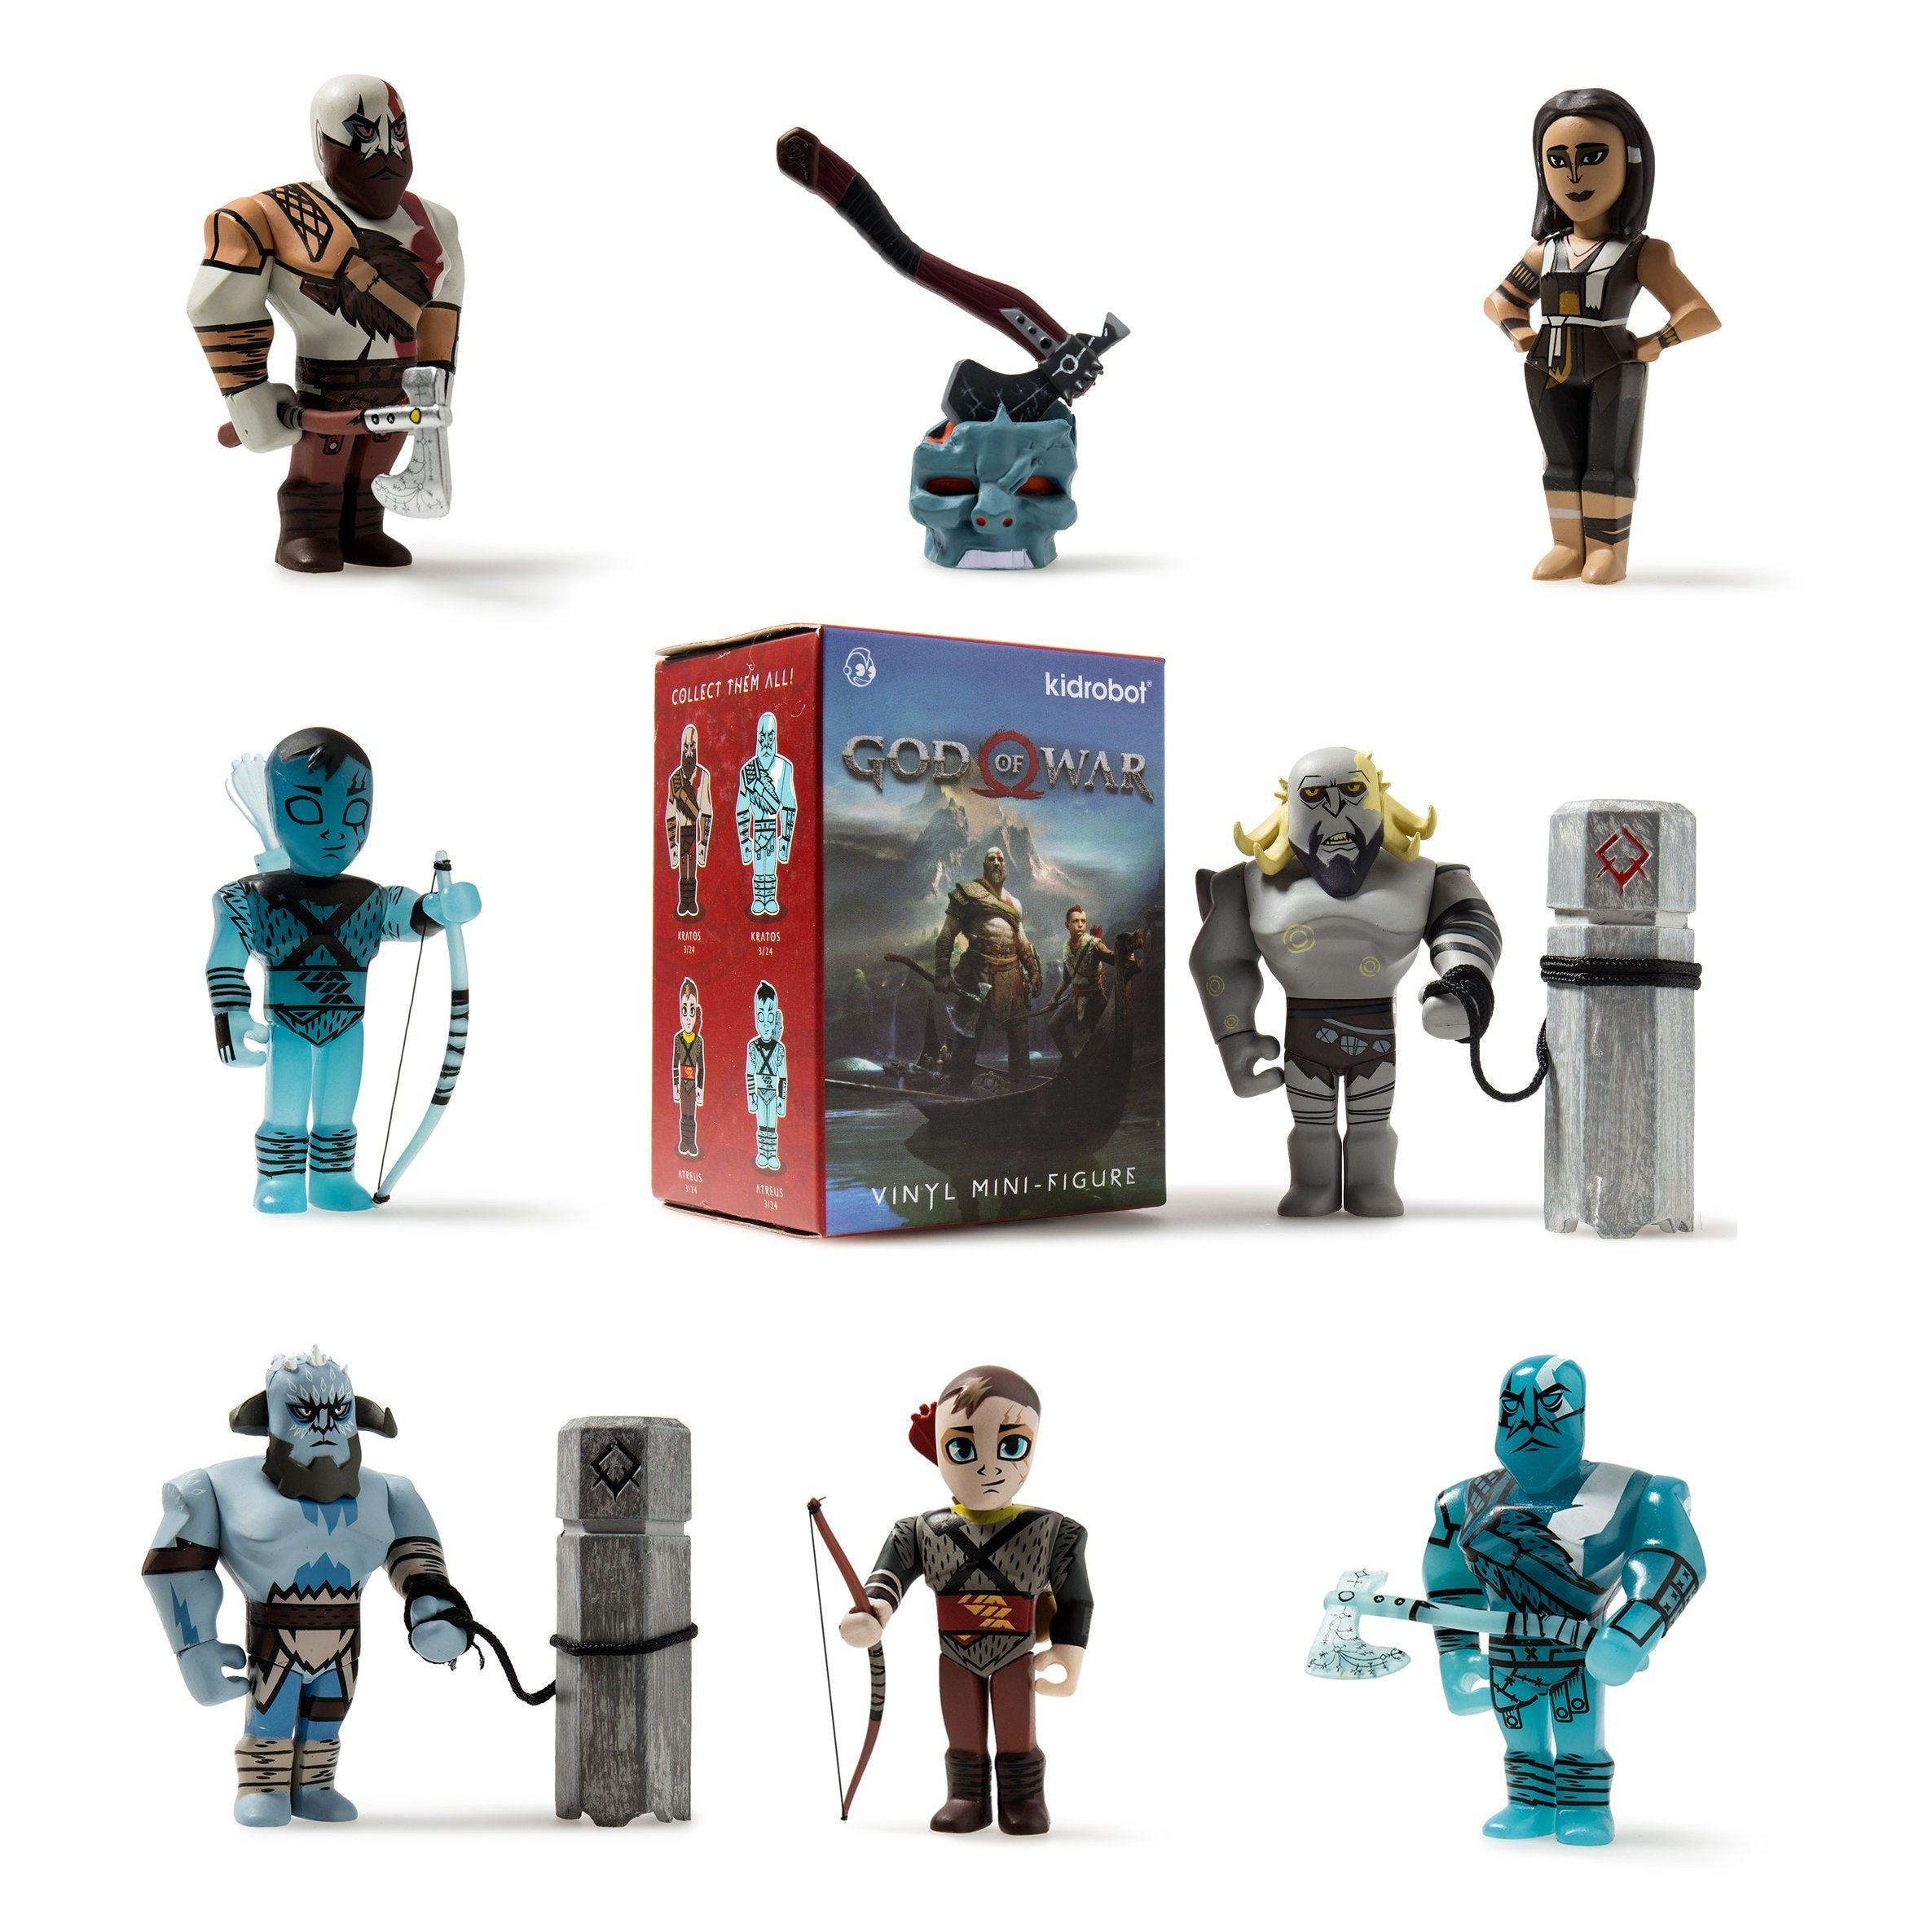 "God of War 3"" Blind Box Mini Series by Kidrobot"